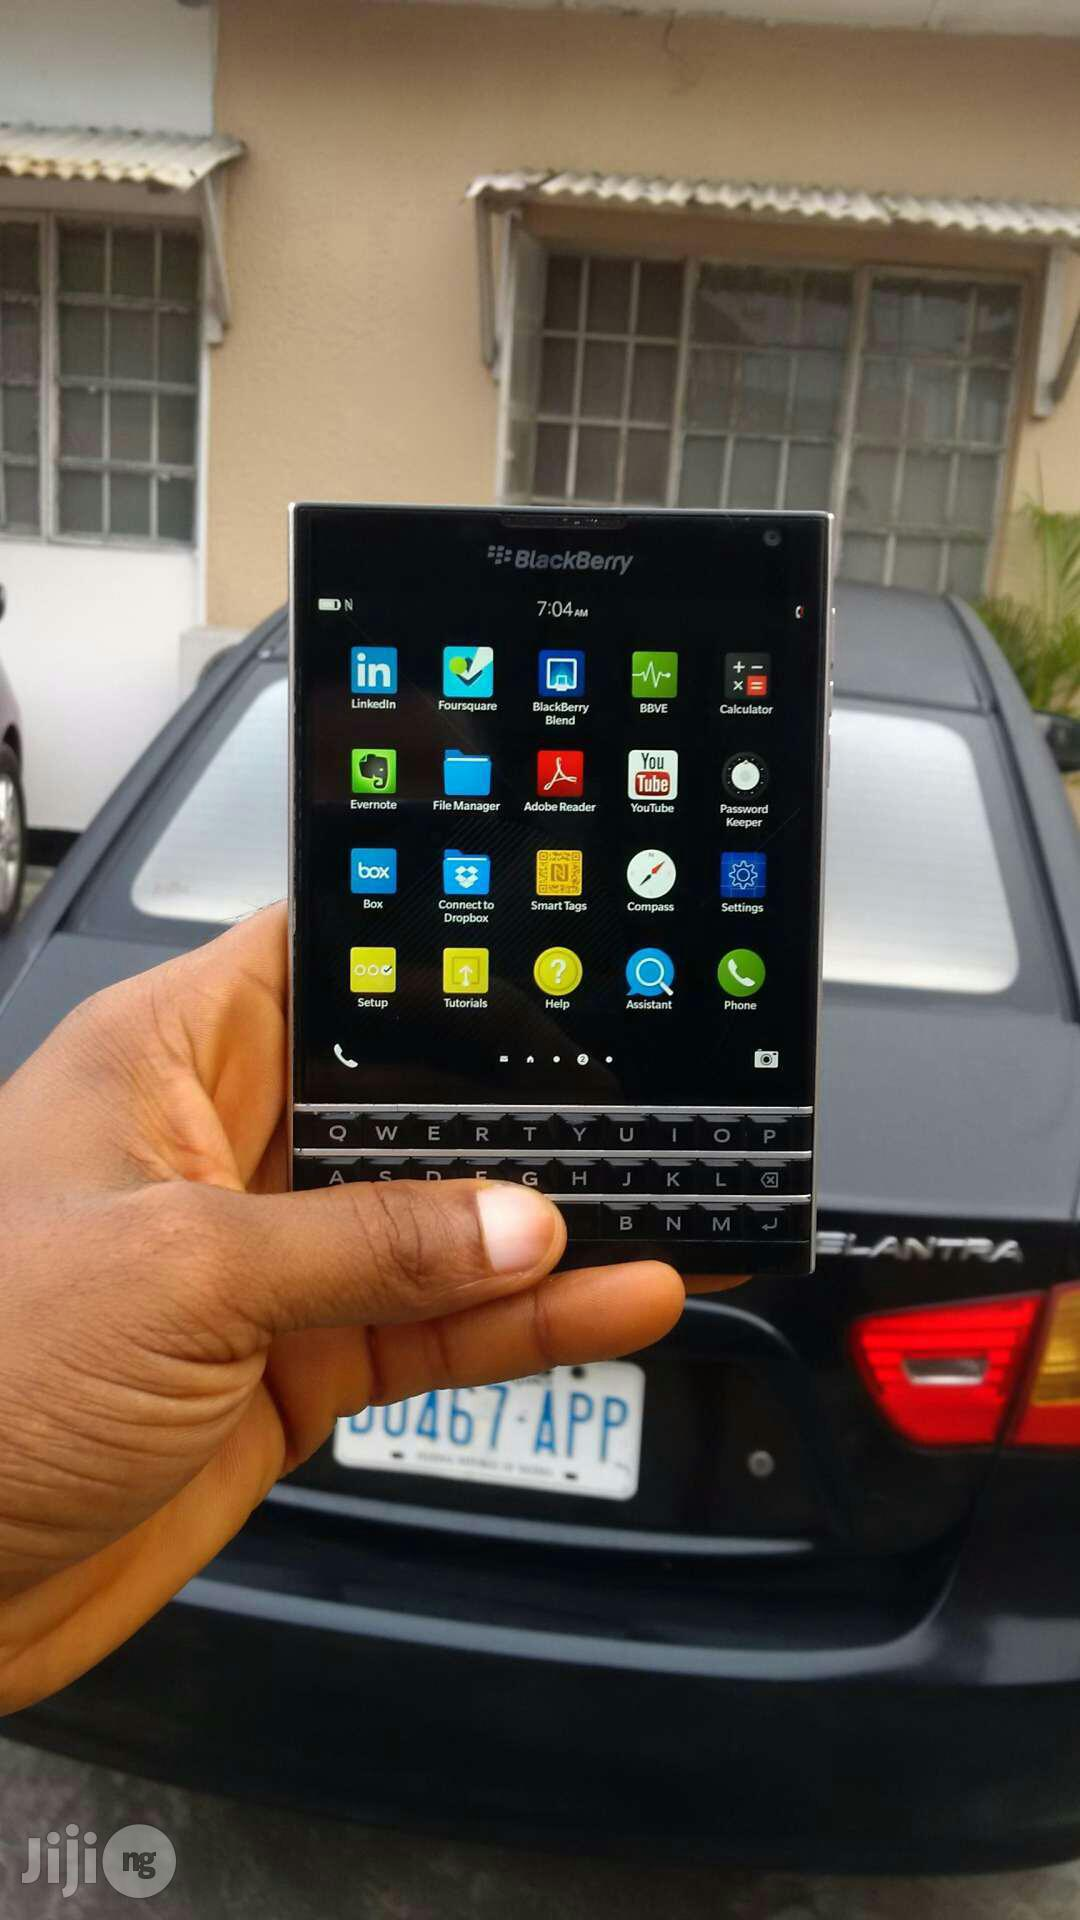 BlackBerry Passport 32 GB Black | Mobile Phones for sale in Port-Harcourt, Rivers State, Nigeria